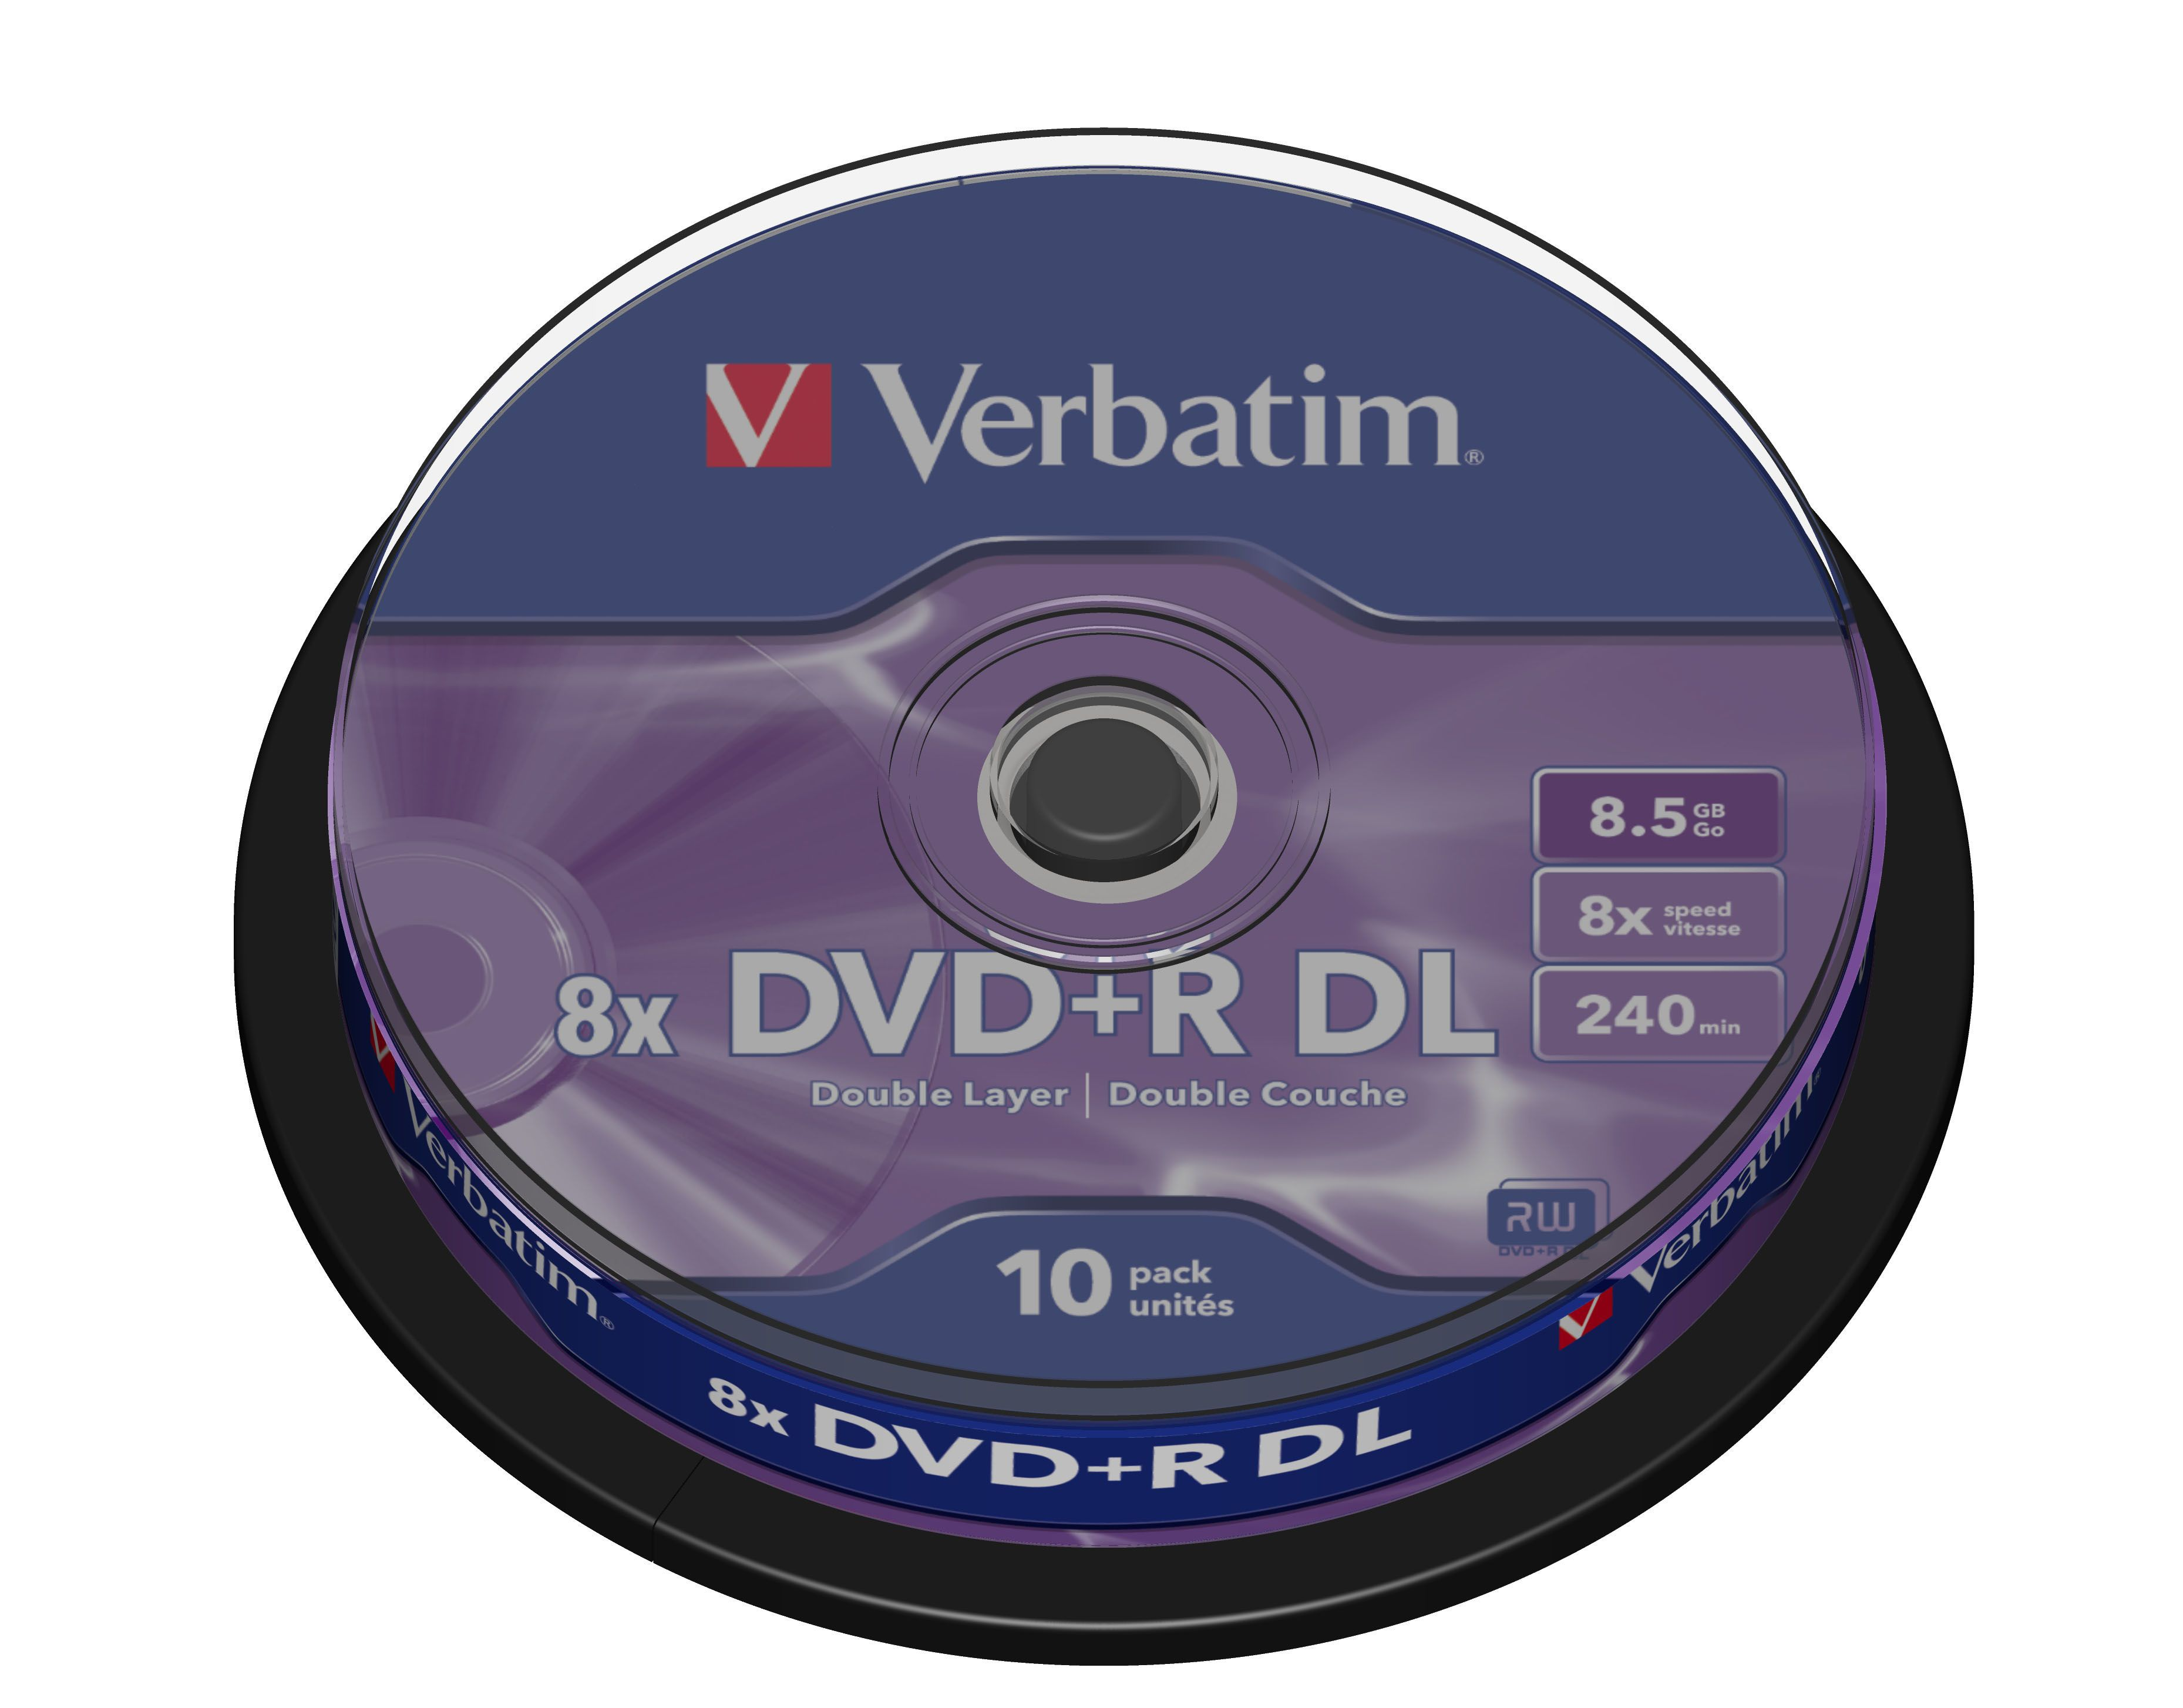 VERBATIM - DVD +R DUPLA FACE 8.5GB 8X SPINDLE 10 A | Mbit on